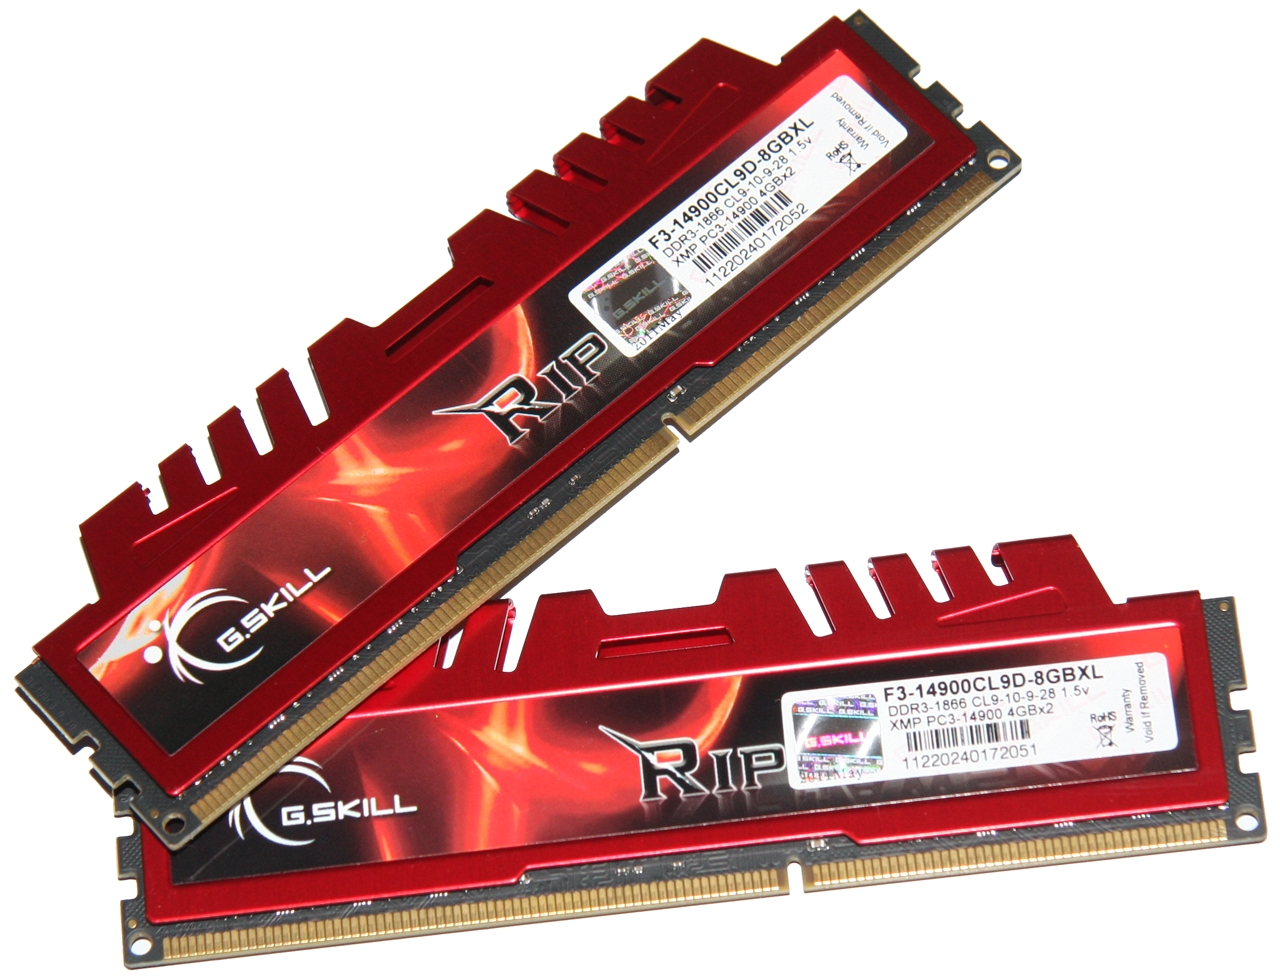 4141_02_g_skill_ripjaws_x_series_pc3_14900_8gb_kit_review_full.jpg